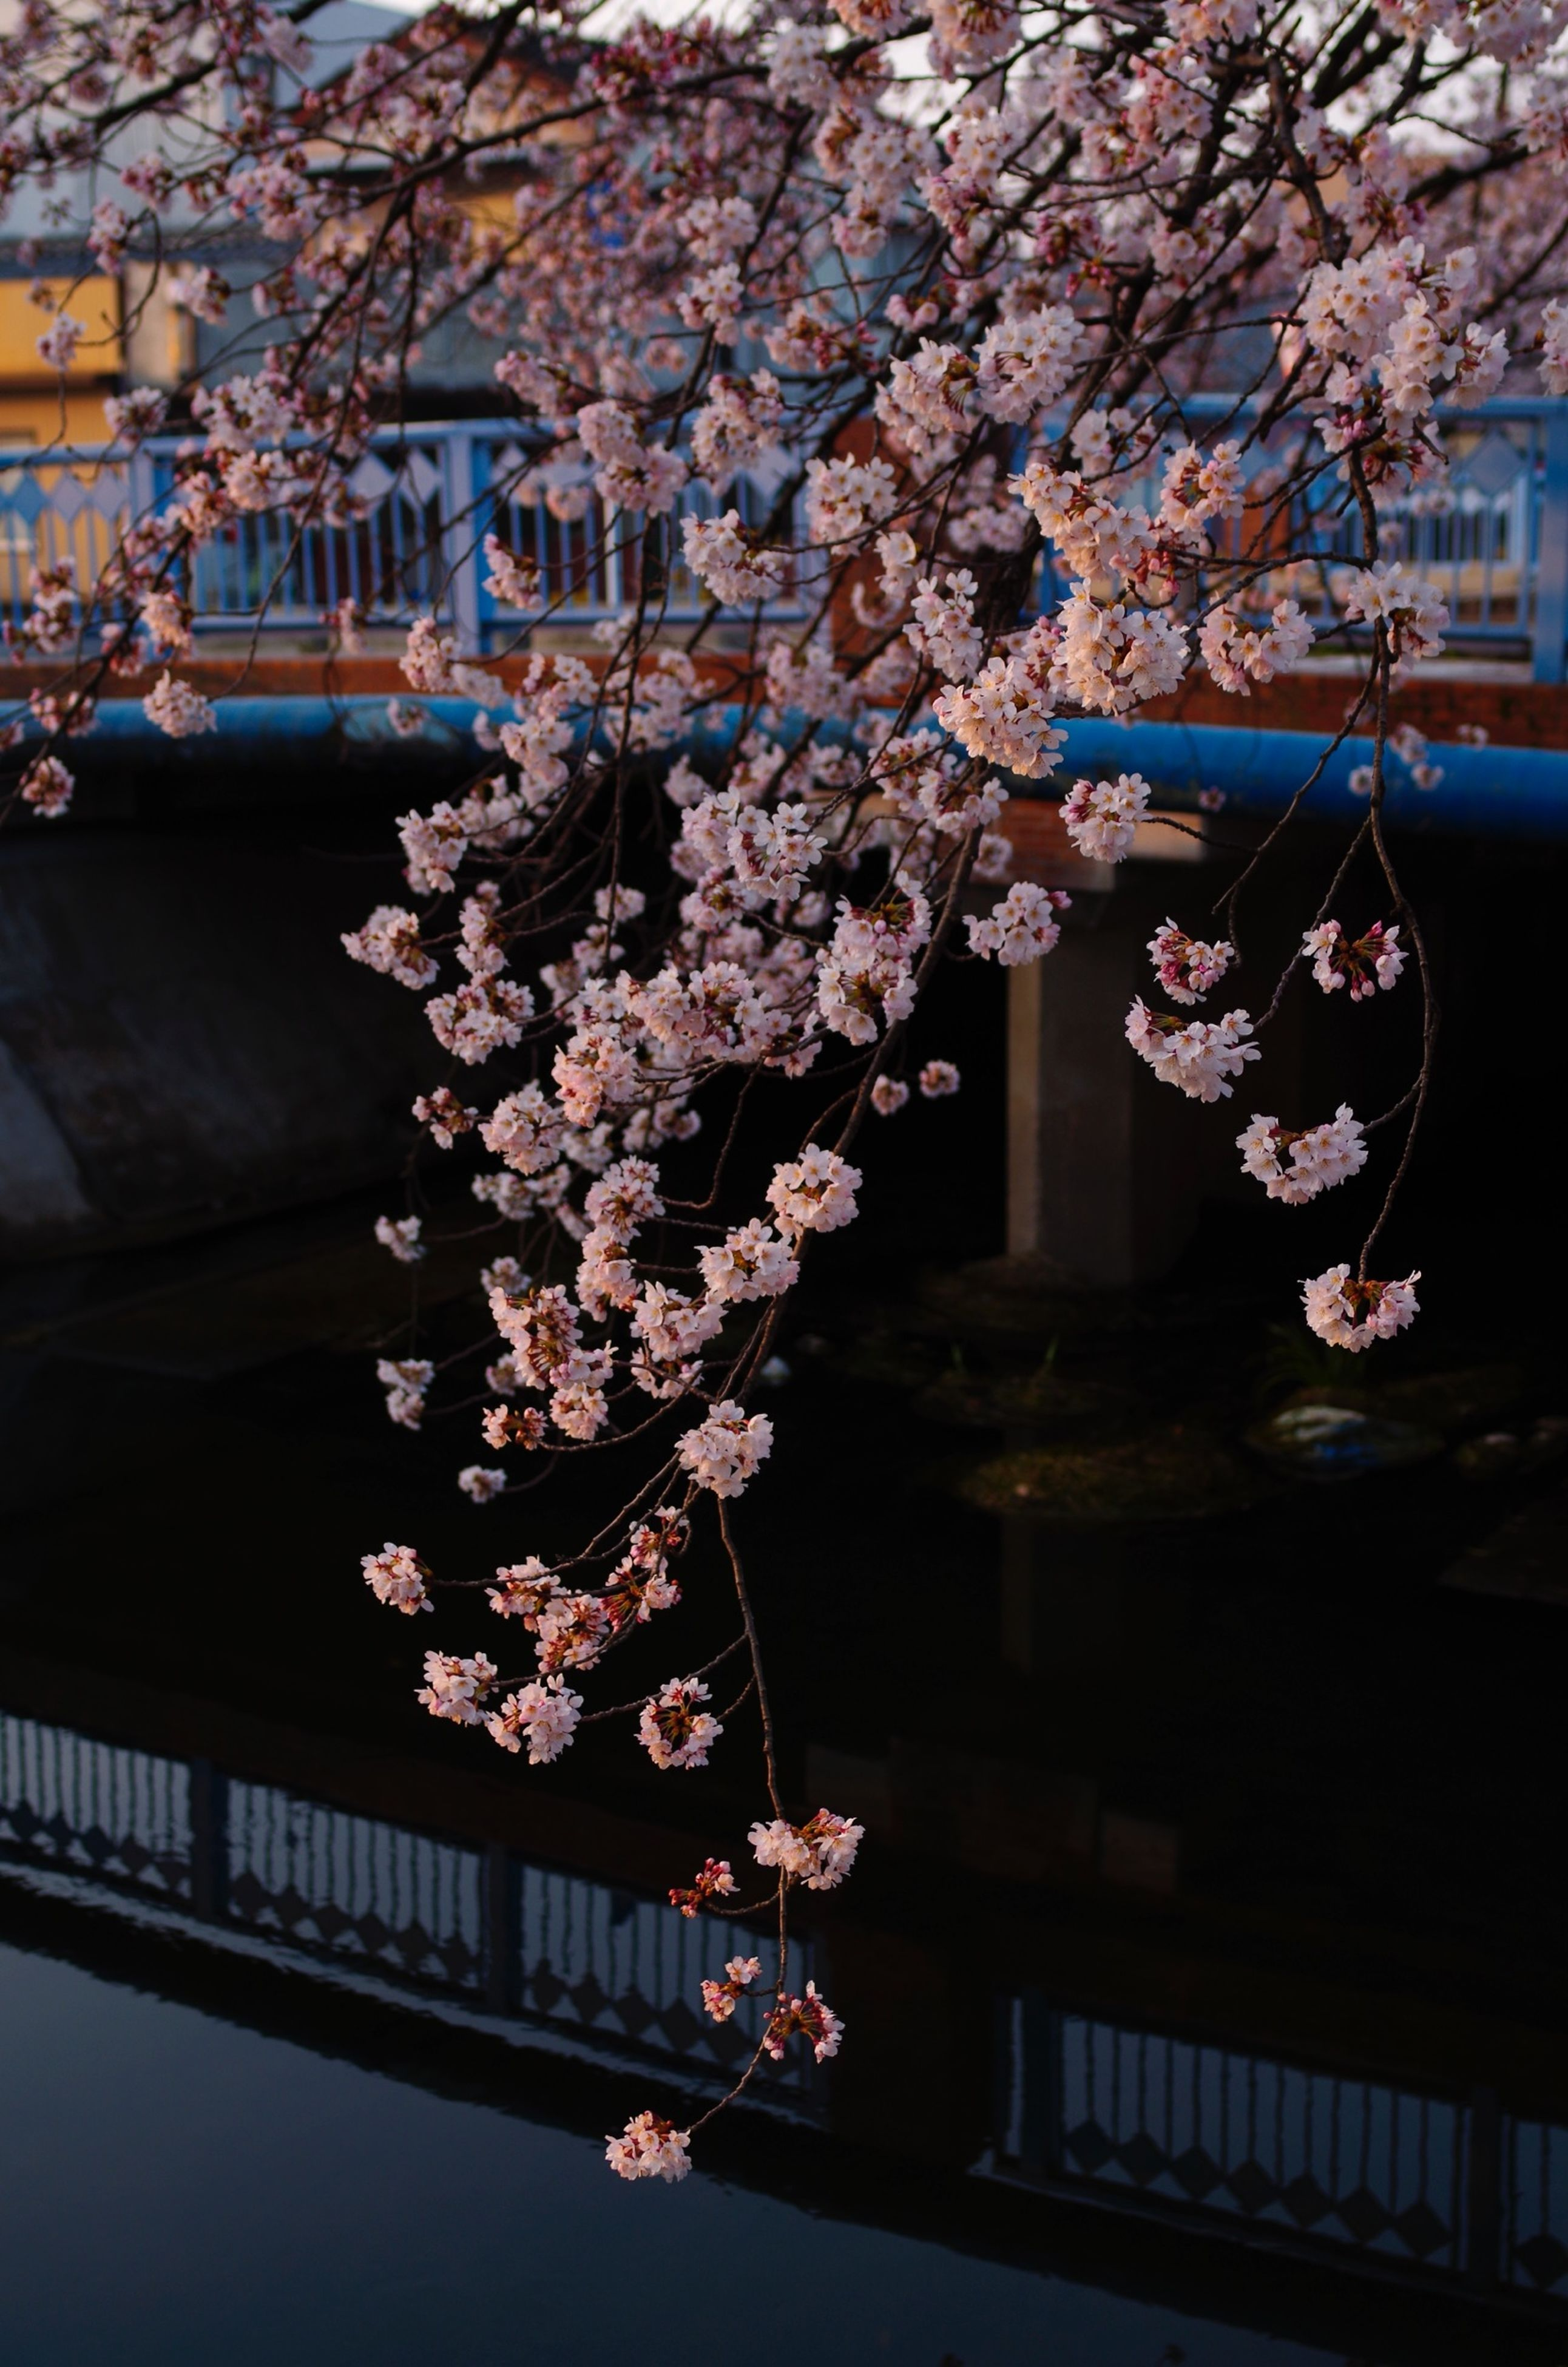 architecture, flower, building exterior, built structure, tree, branch, city, pink color, cherry blossom, railing, decoration, outdoors, building, day, blossom, cherry tree, city life, hanging, freshness